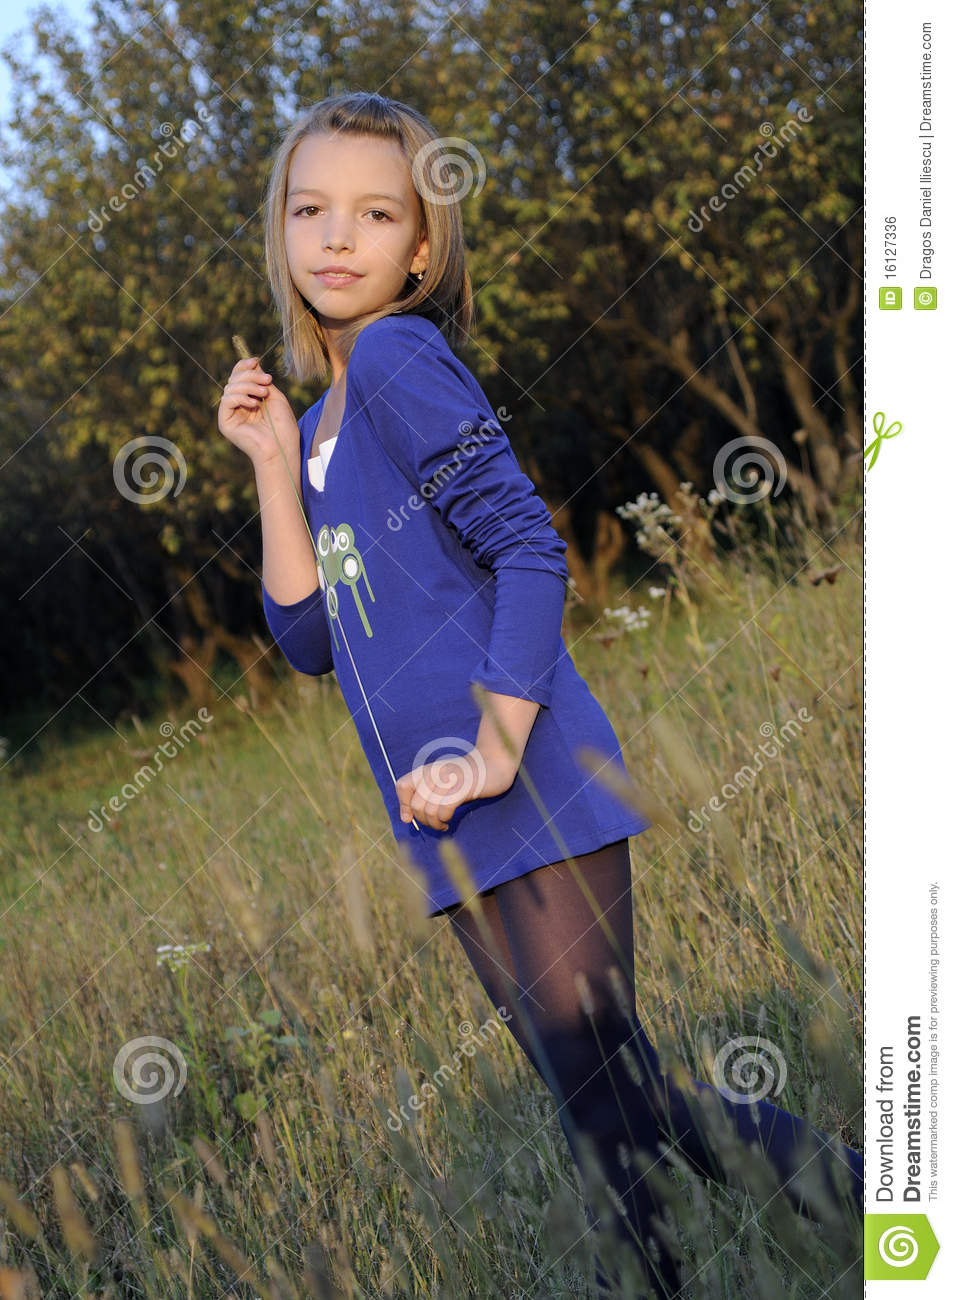 Teen Playing In Nature Stock Photo. Image Of Vertical